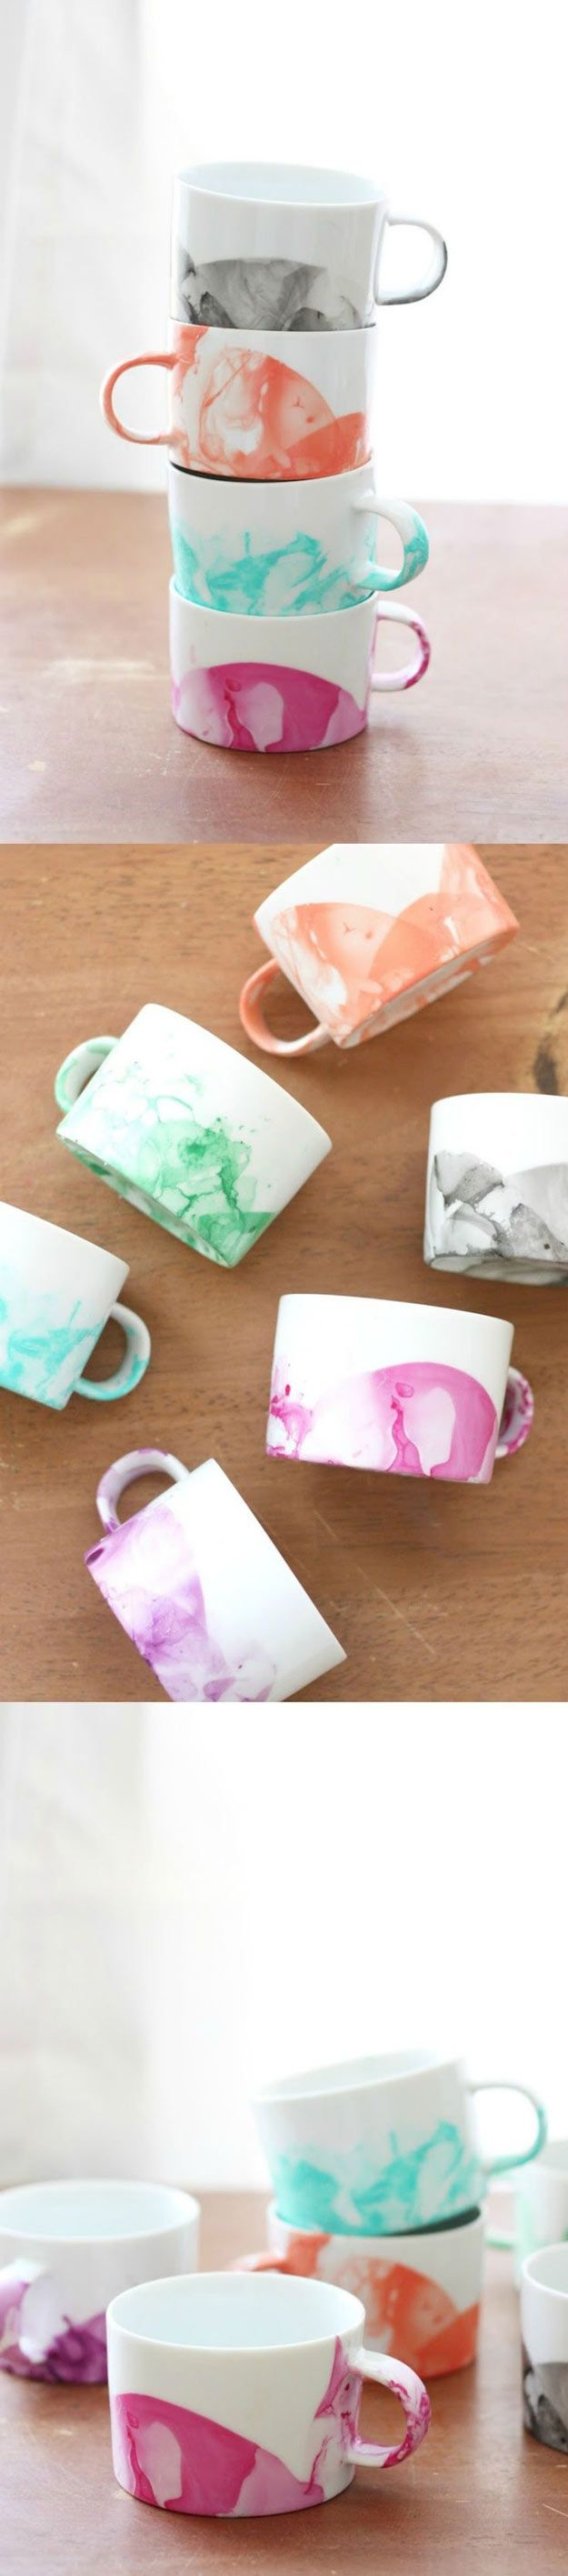 Cool DIY Ideas for Fun and Easy Crafts - DIY Marbled Glasses for Cool Modern Home Decor - DIY Moon Pendant for Easy DIY Lighting in Teens Rooms - Dip Dyed String Wall Hanging - DIY Mini Easel Makes Fun DIY Room Decor Idea - Awesome Pinterest DIYs that Are Not Impossible To Make - Creative Do It Yourself Craft Projects for Adults, Teens and Tweens. http://diyprojectsforteens.com/fun-crafts-pinterest